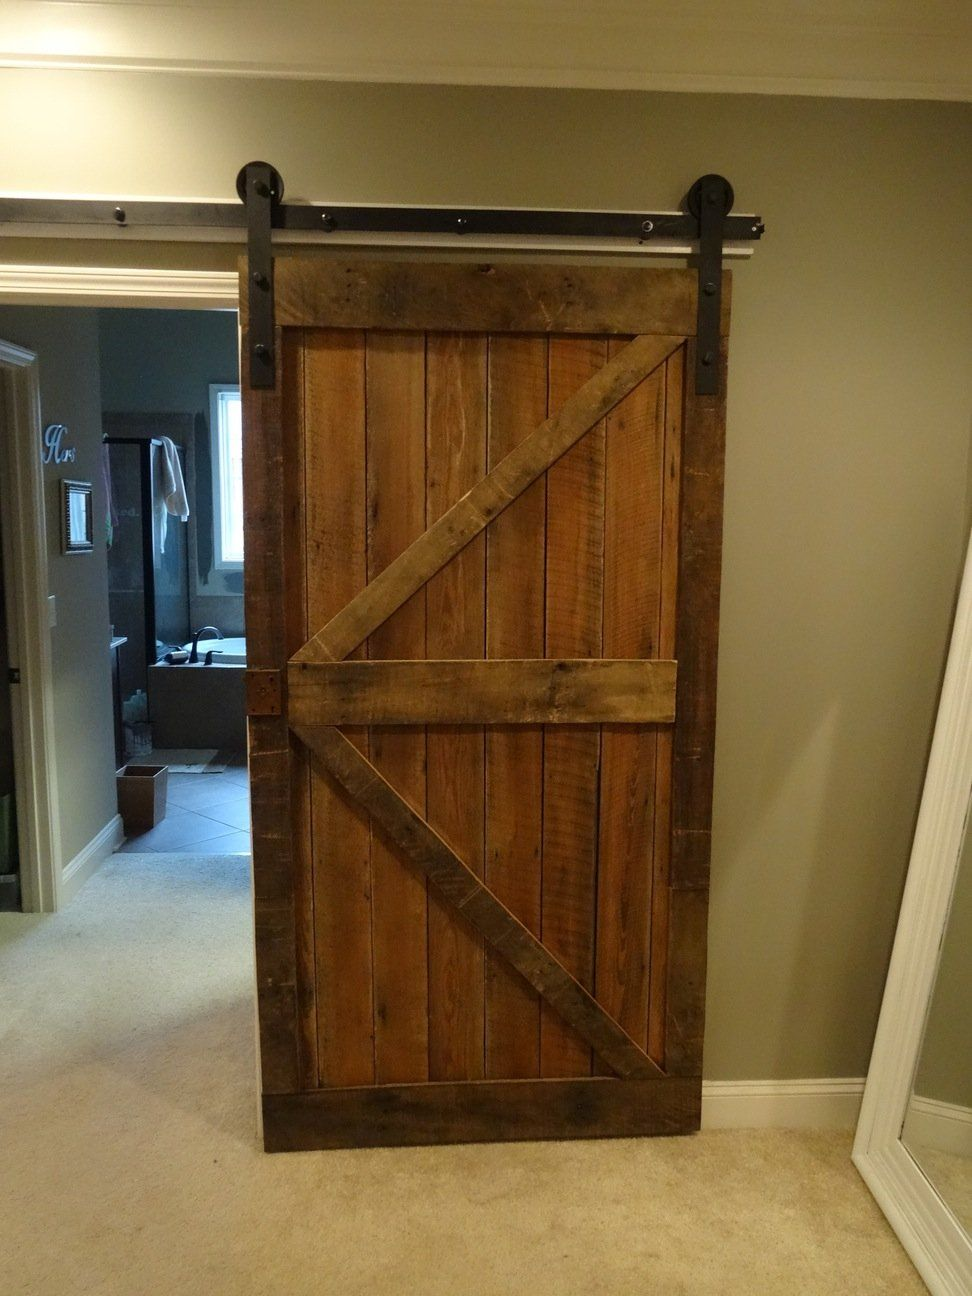 The Easy Way To Build Cheap Sliding Barn Doors Bedroom Ideas In 2020 Room Door Design Interior Barn Doors Door Design